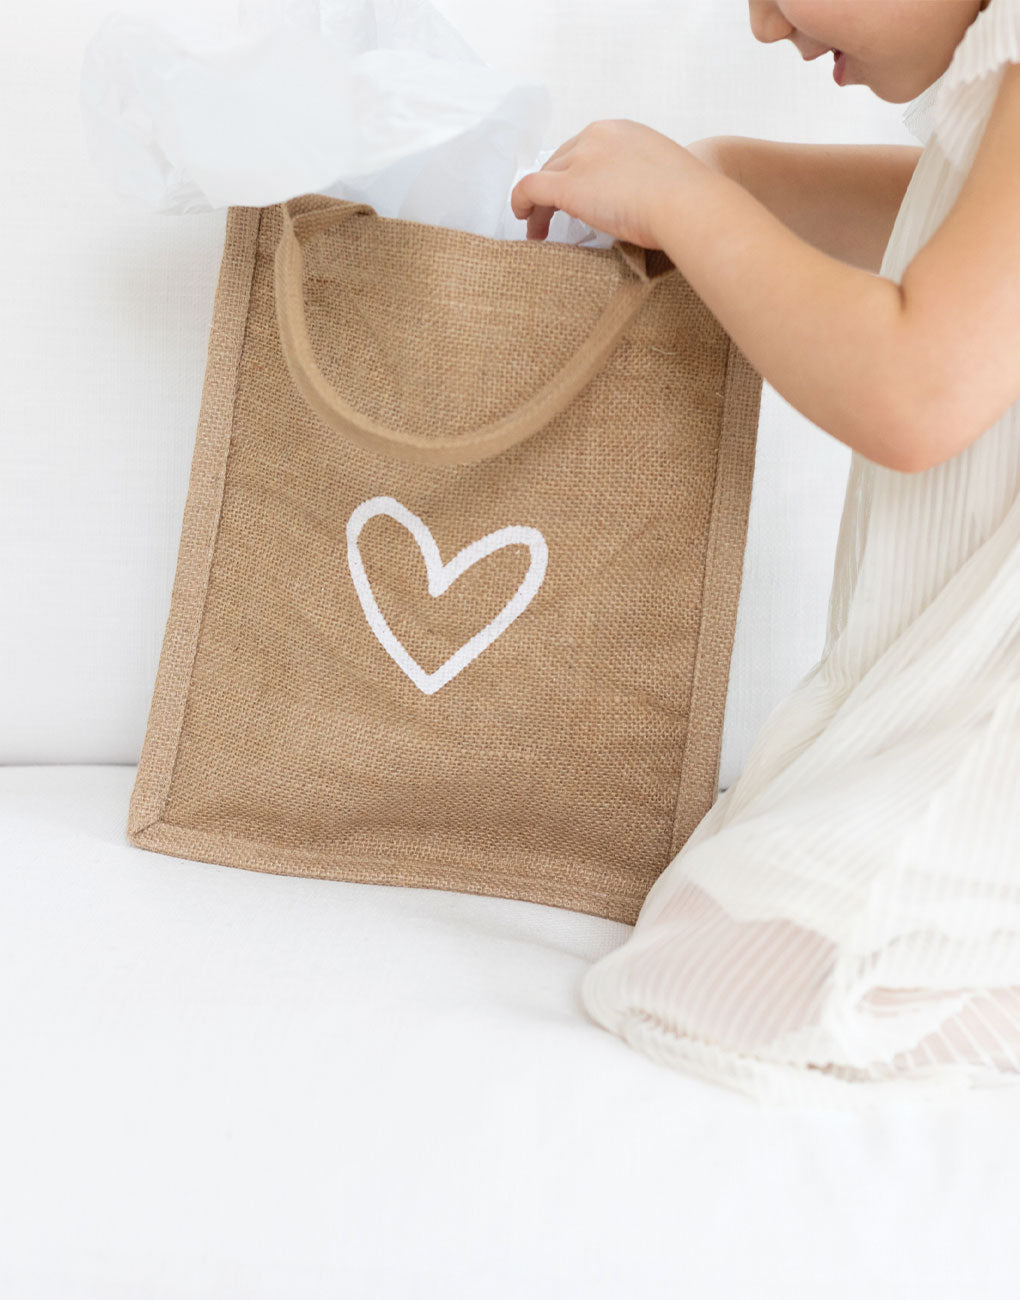 Heart Reusable Gift Tote In White Font | The Little Market